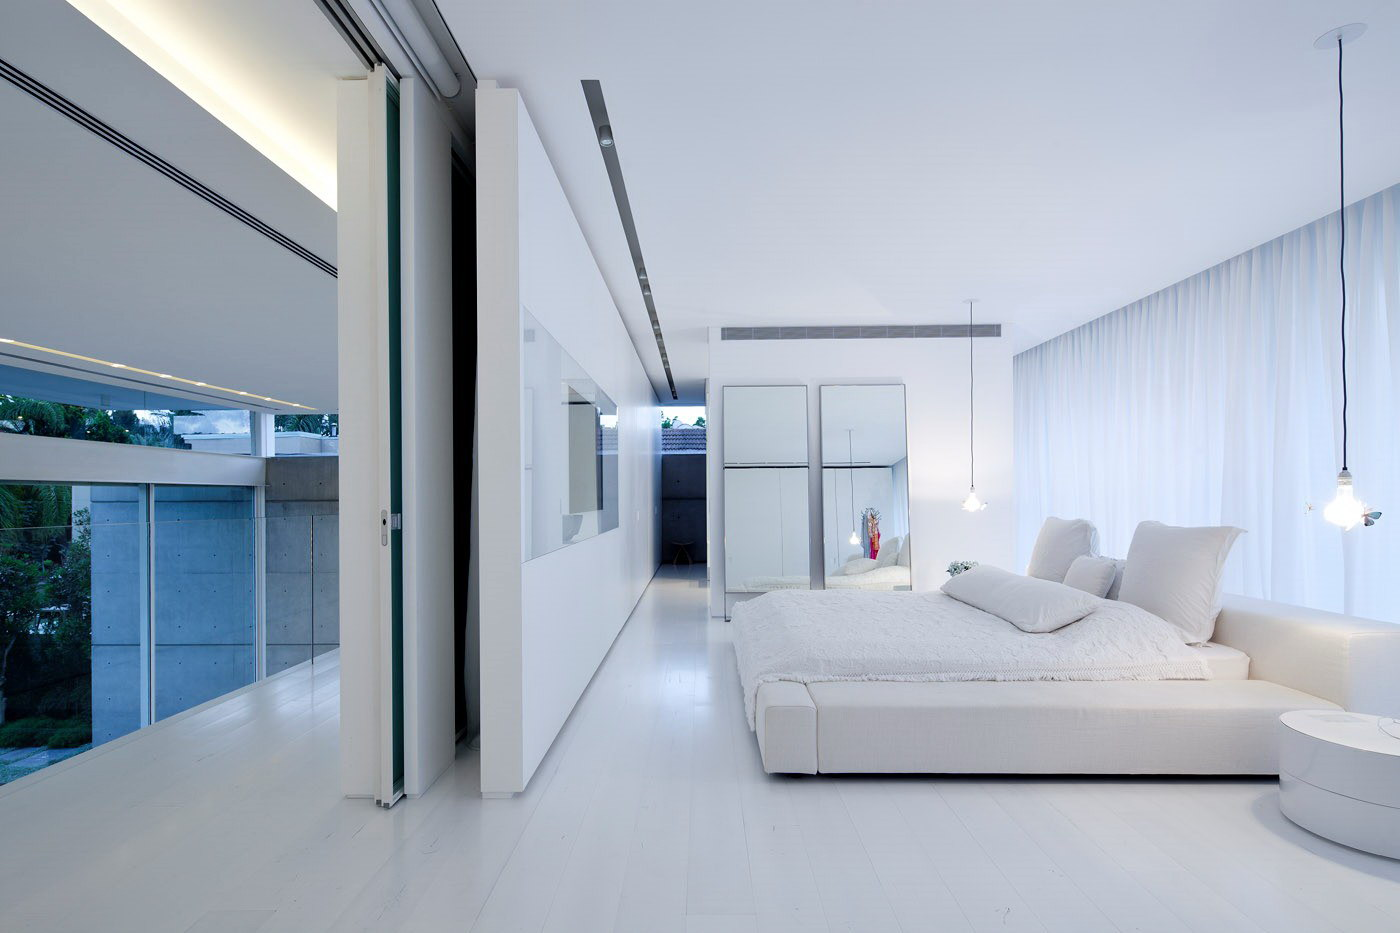 House with Two Courtyards by Pitsou Kedem Architects